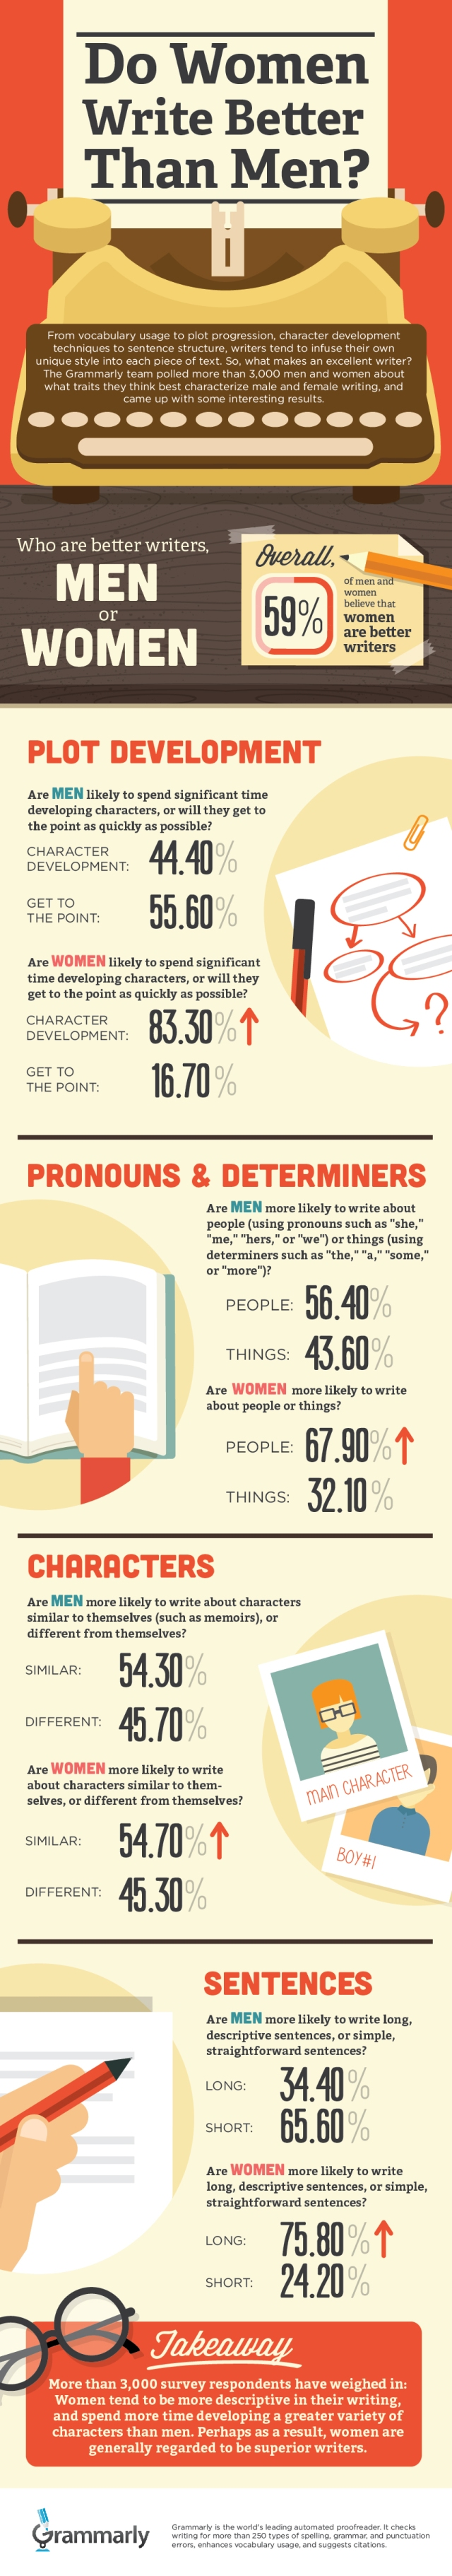 Grammarly_MenvsWomen_Writers_infographic